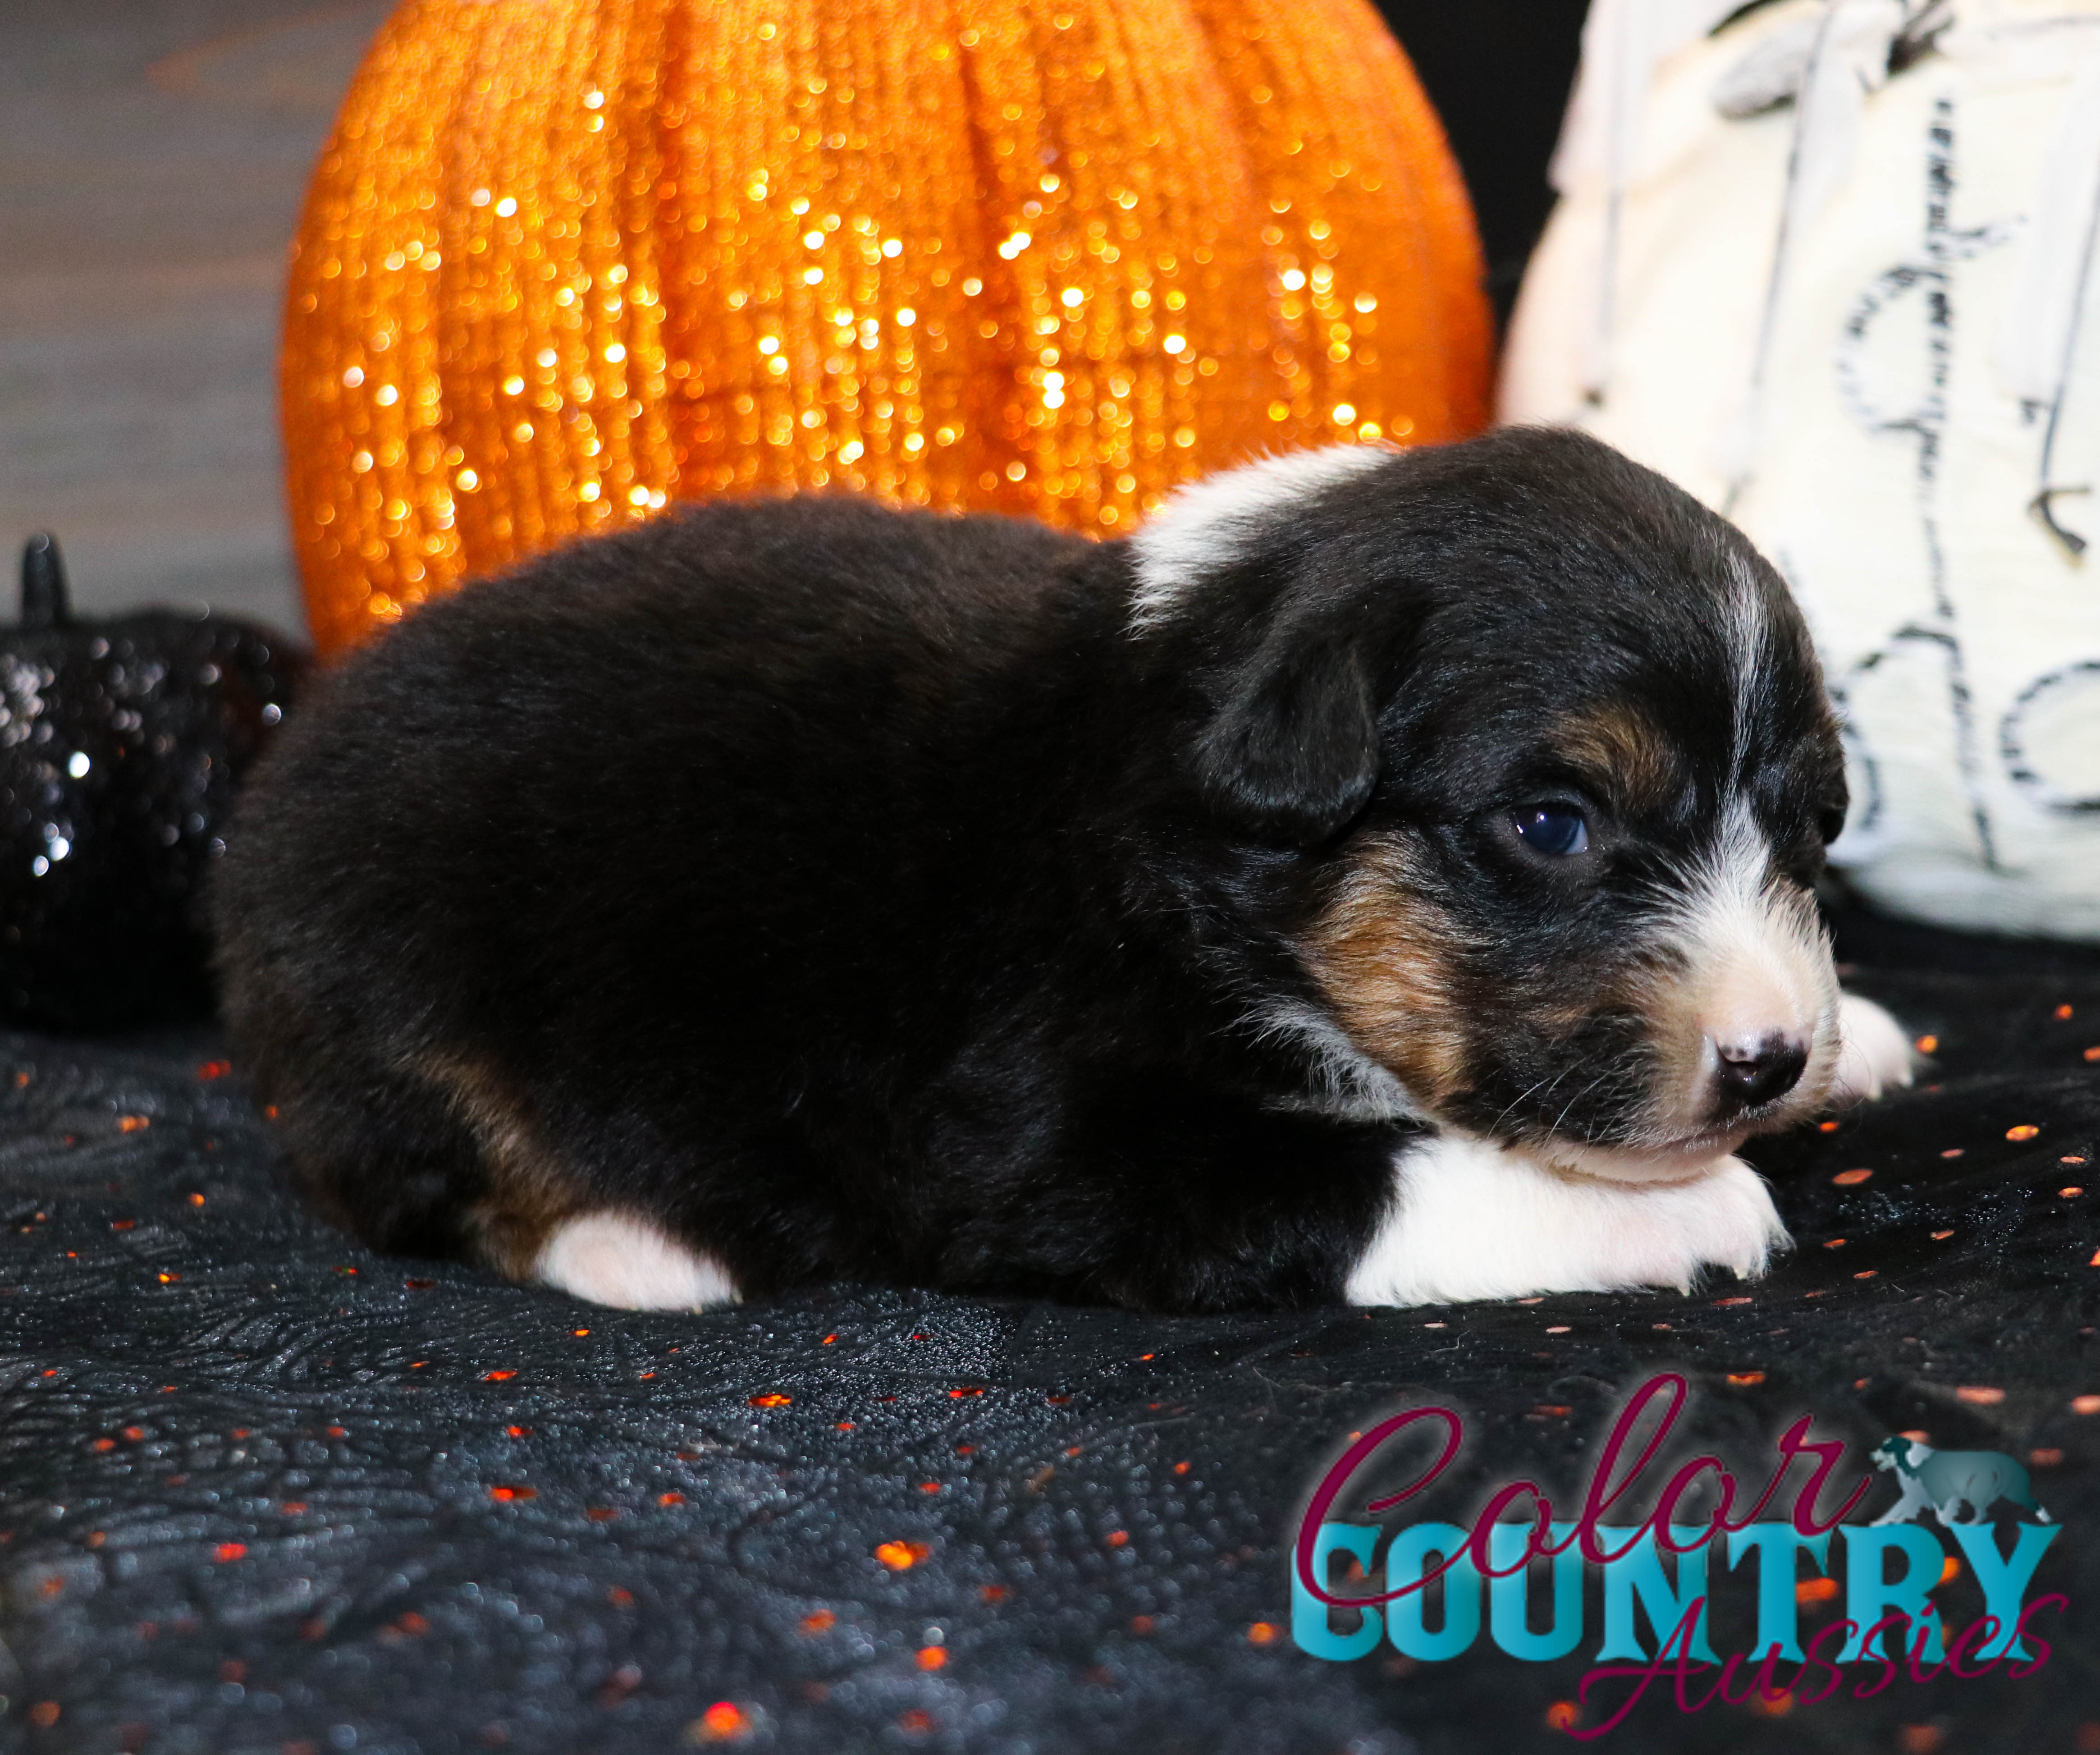 Riot Black Tri Female Mini Aussie 3 Weeks Old #colorcountryaussies #miniaussie (2)